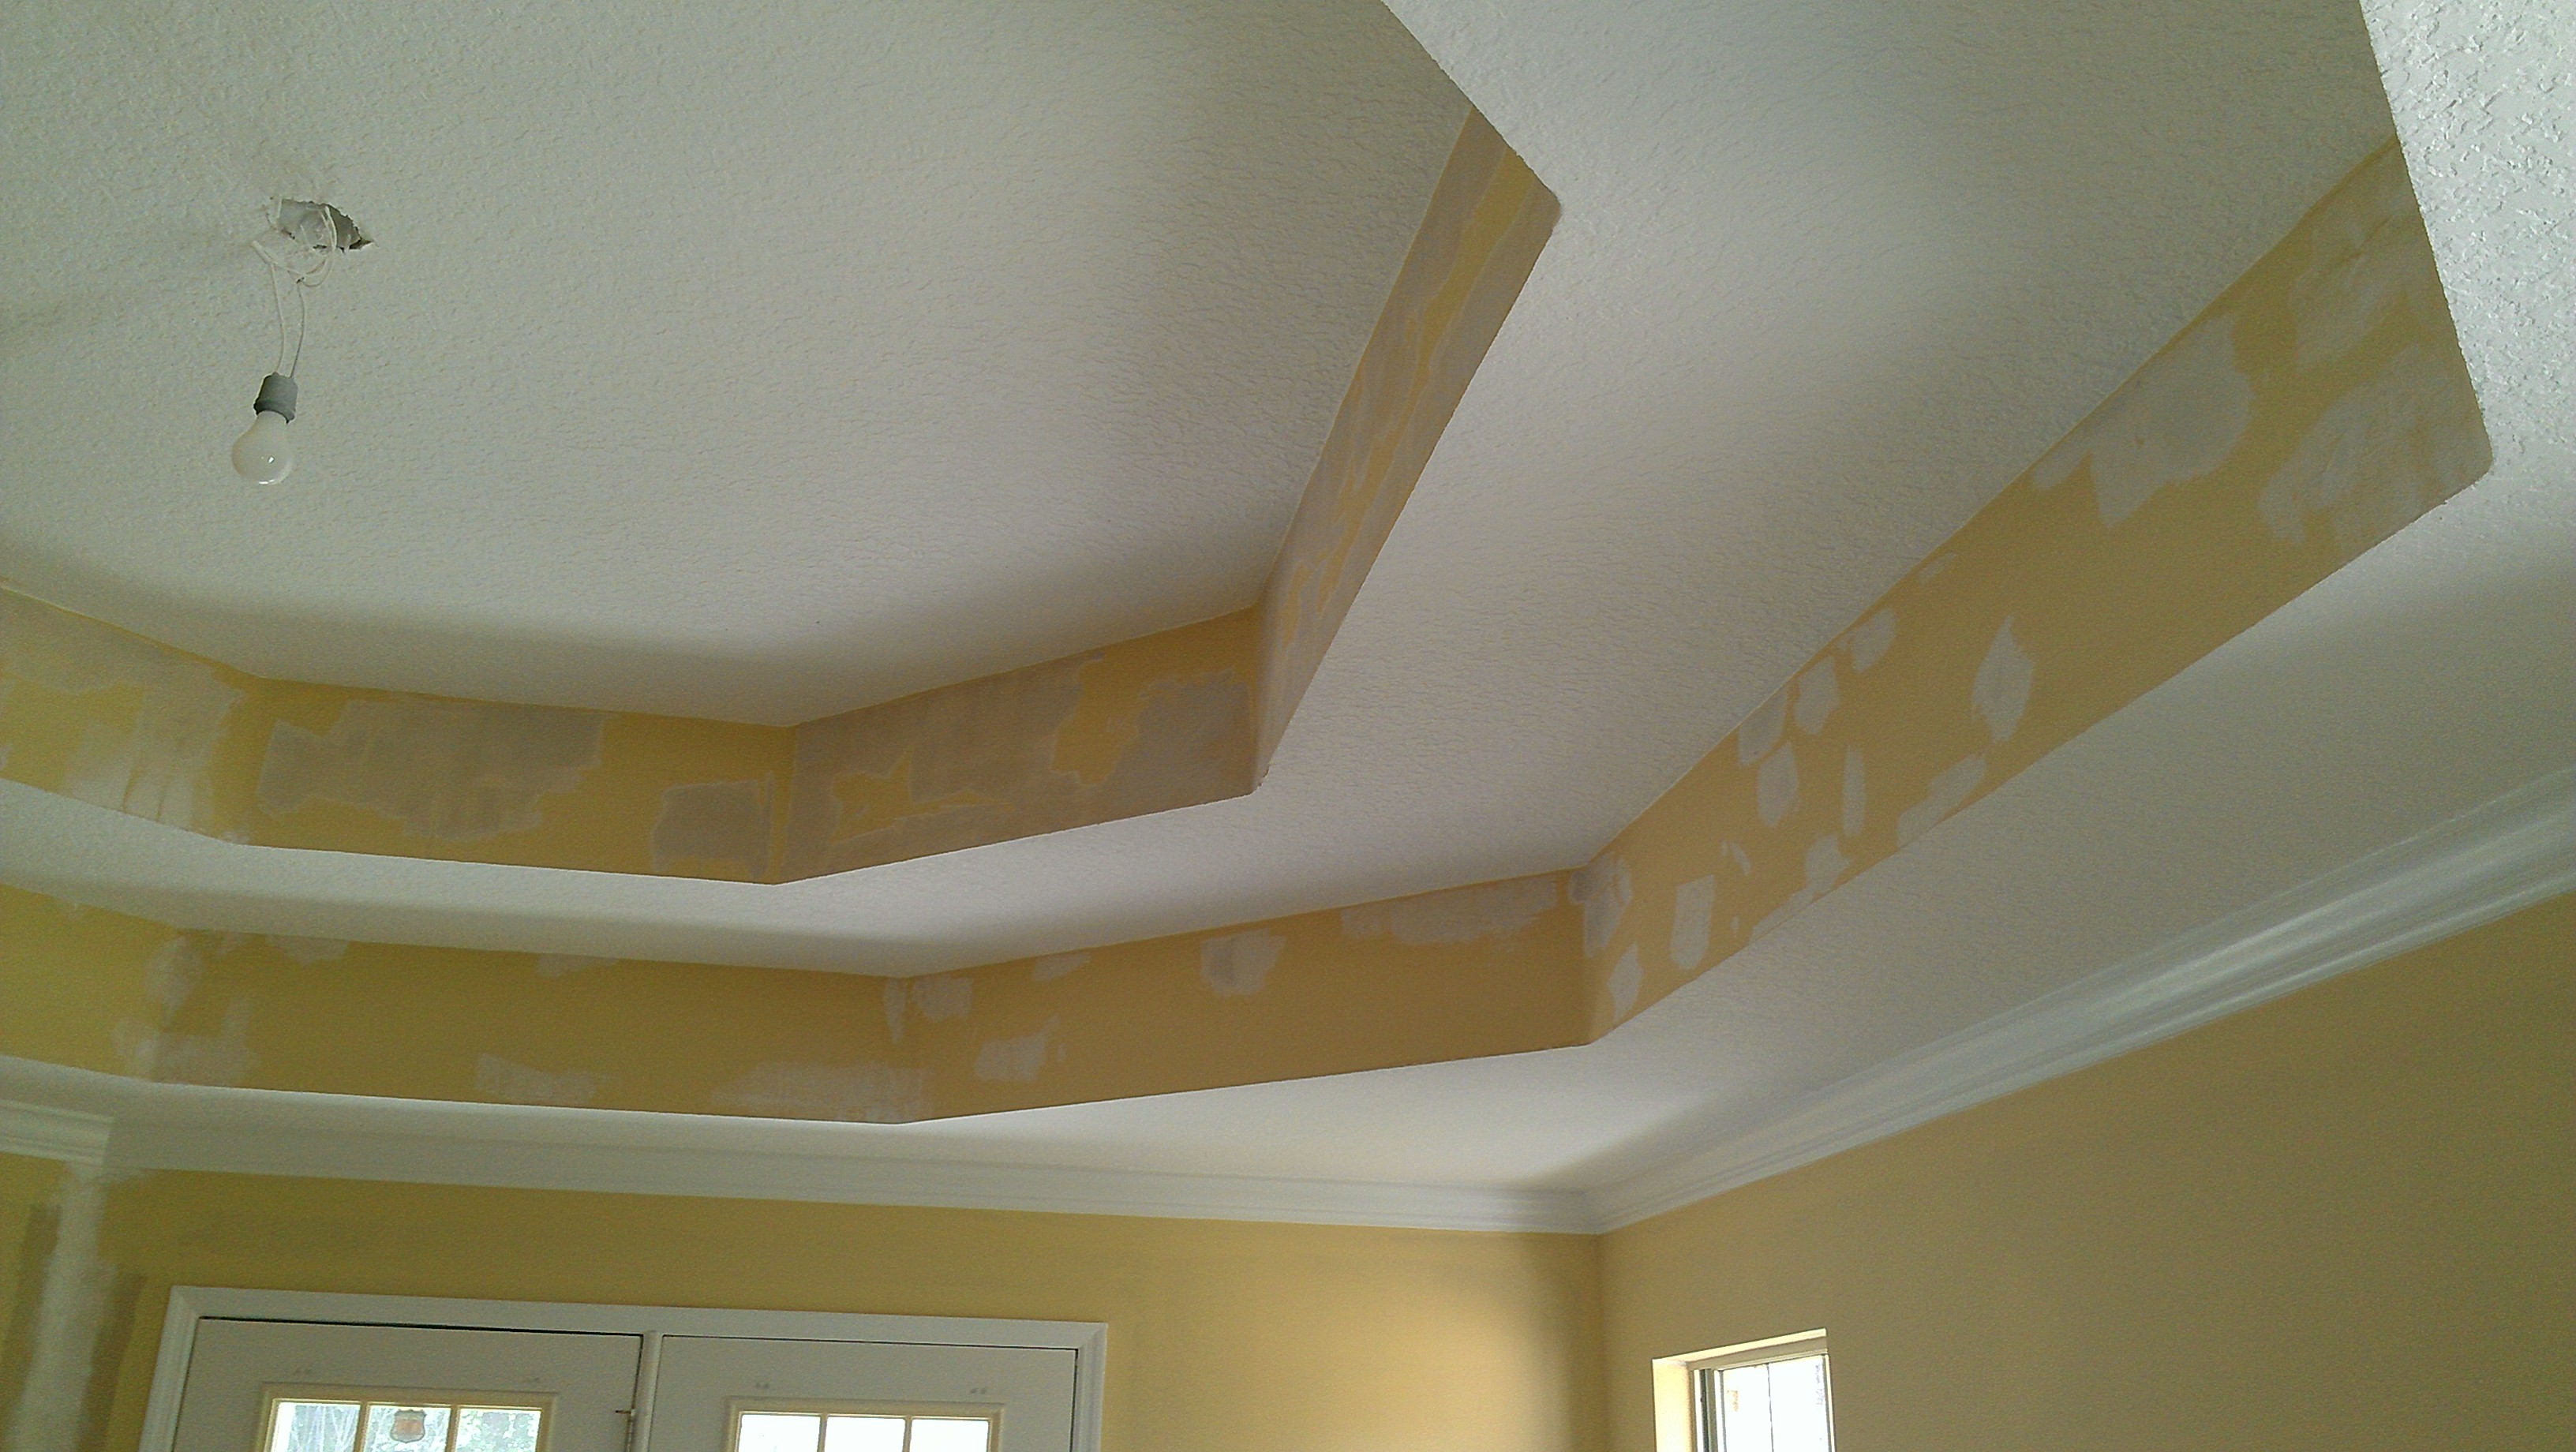 Knockdown Textured Ceiling Ceiling Contractor In Jacksonville Drywall And Popcorn Removal